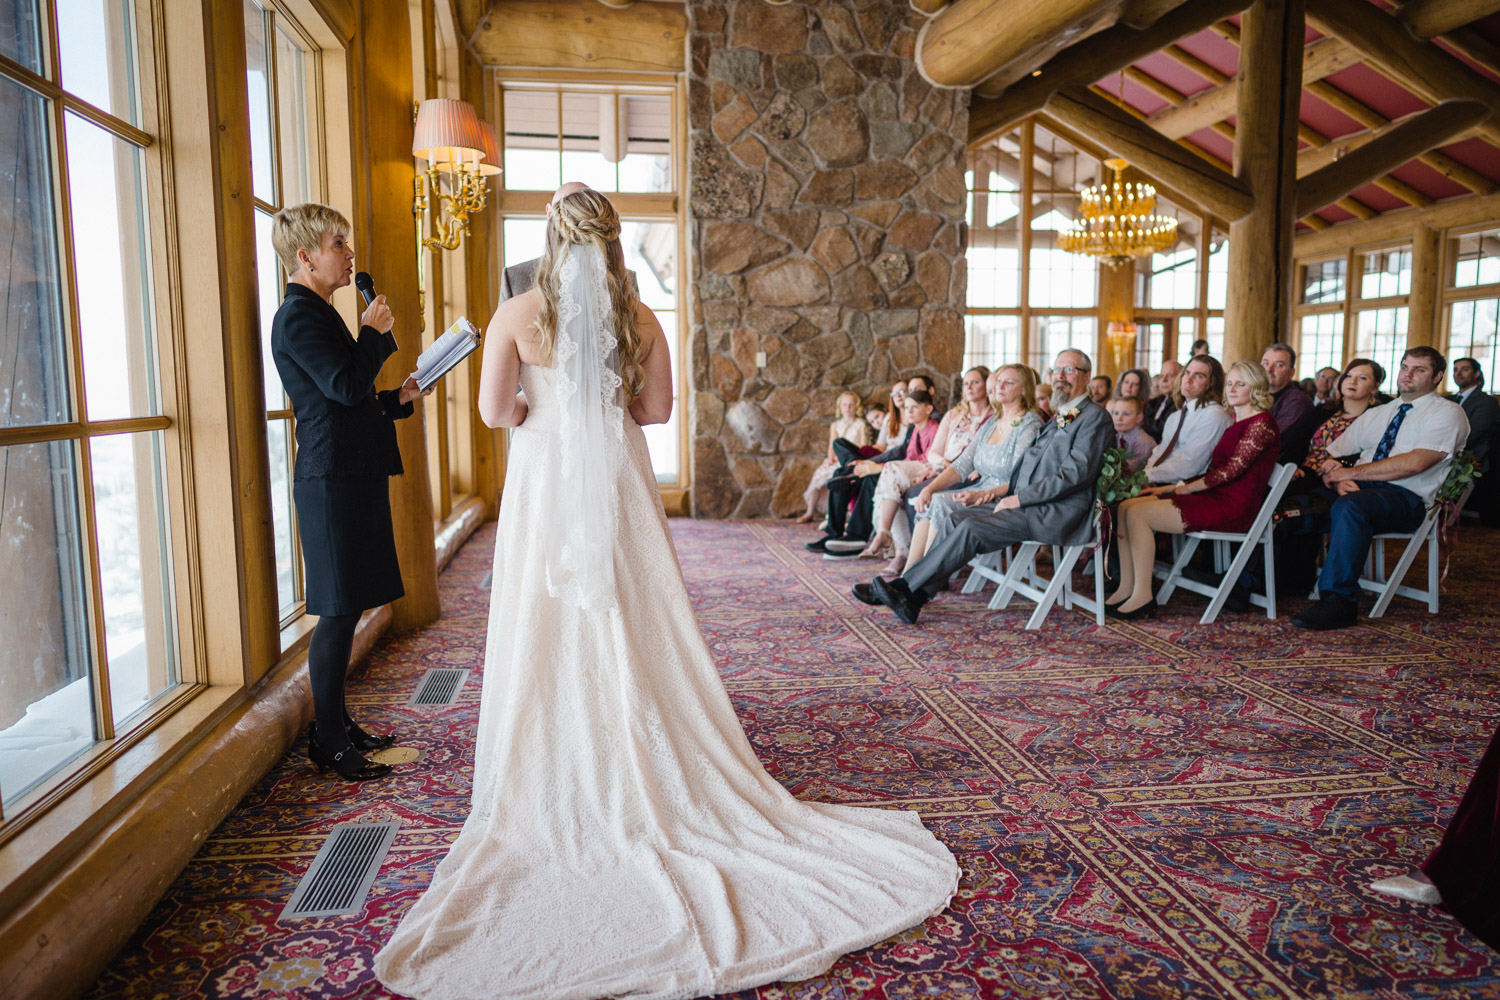 bride train officiant and guests at wedding ceremony snowbasin resort